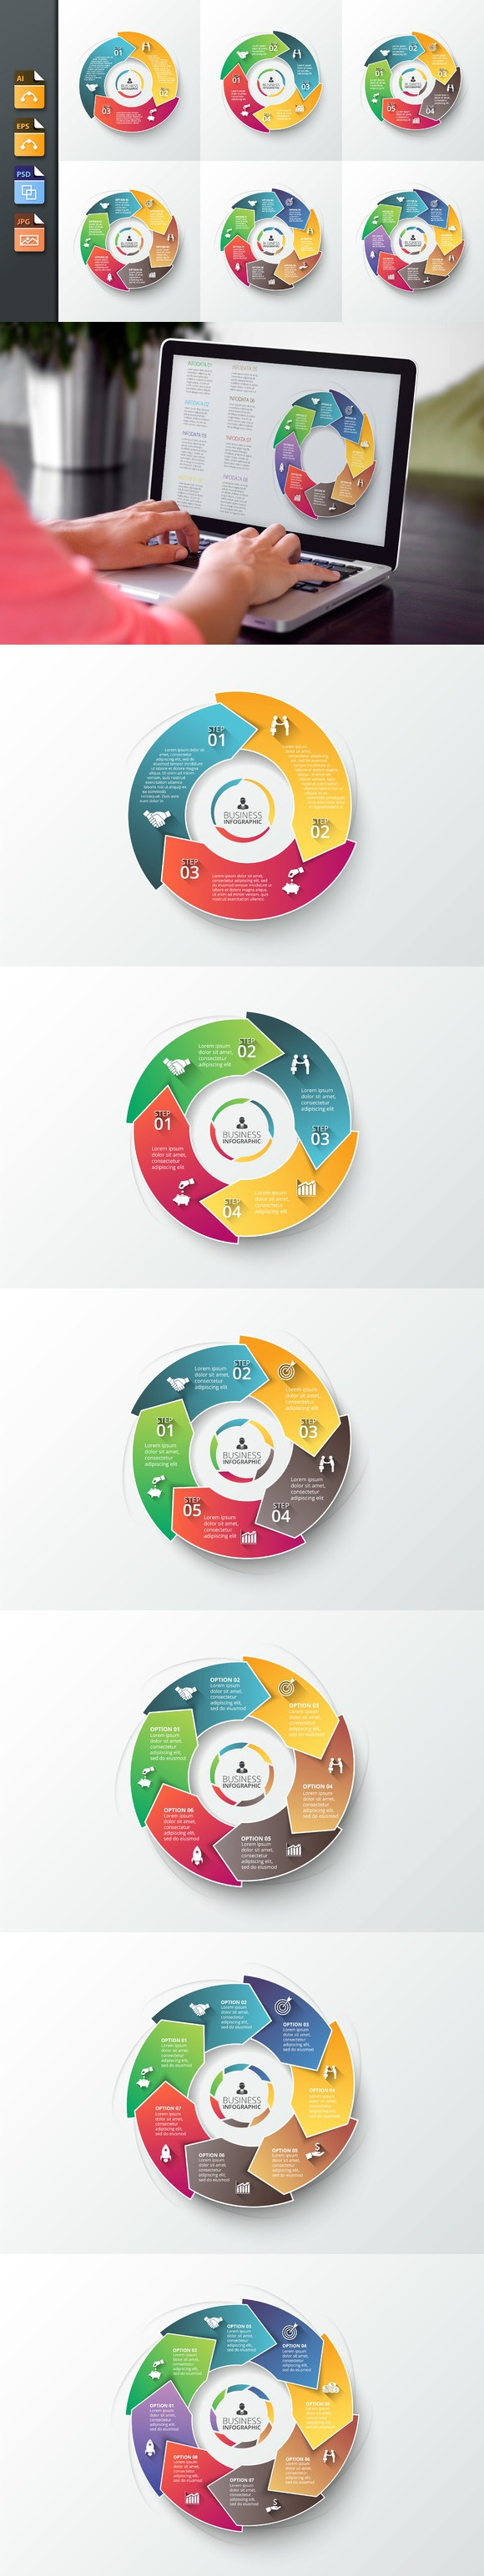 Arrows business infographic template